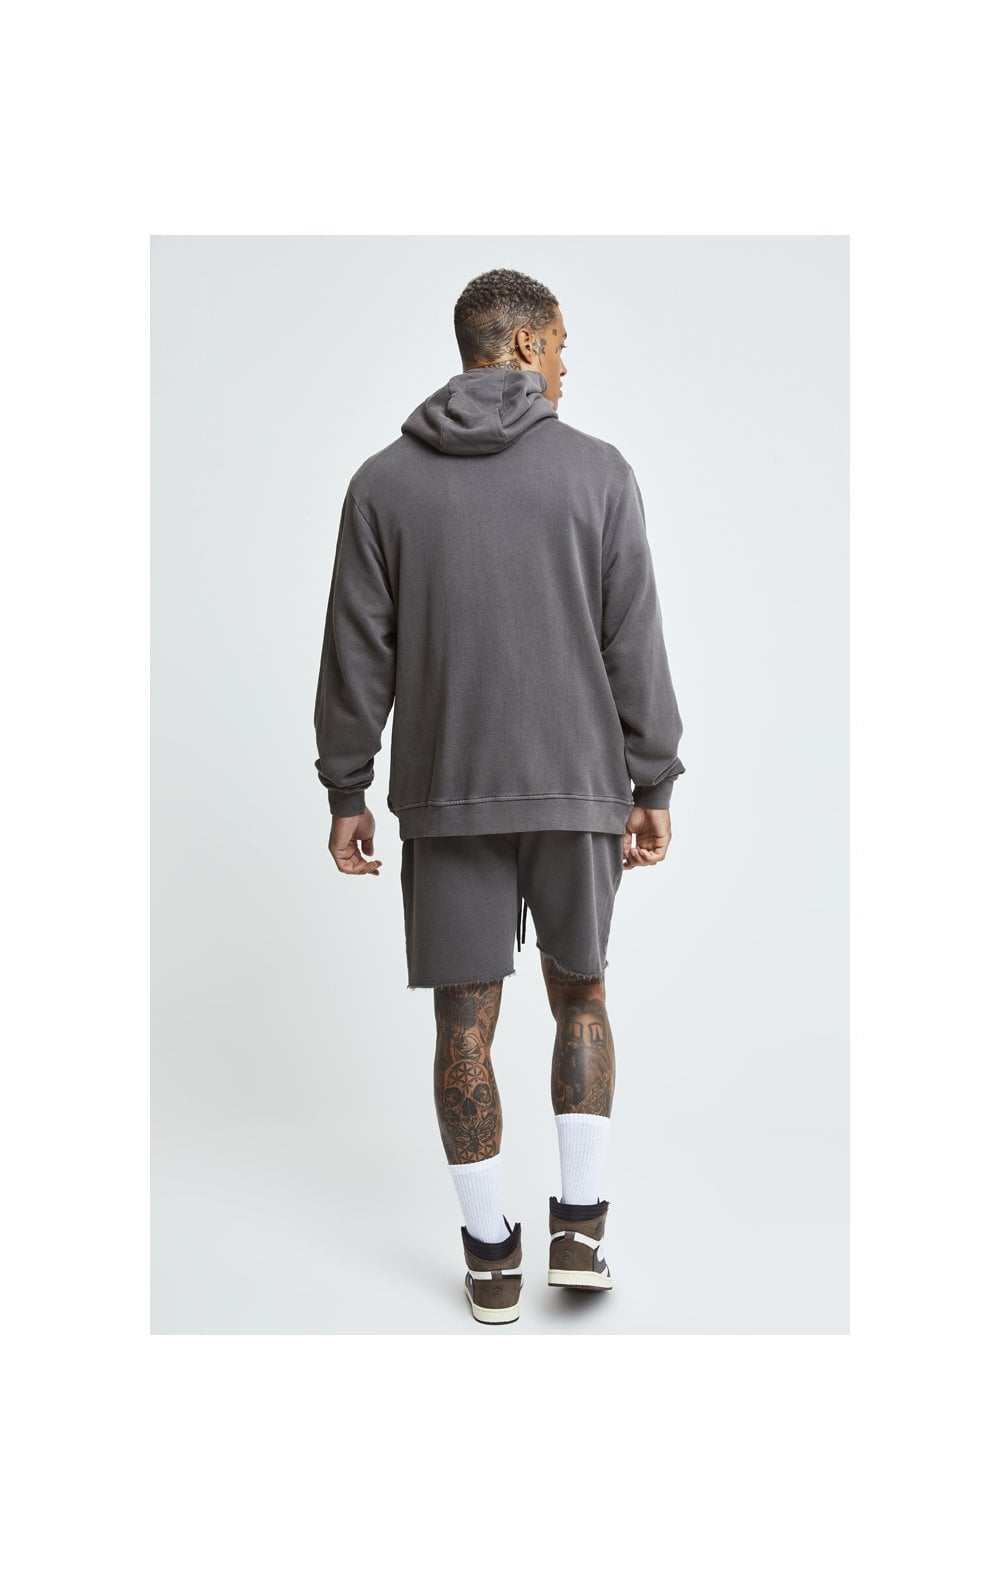 SikSilk X Steve Aoki Relaxed Shorts - Washed Grey (7)